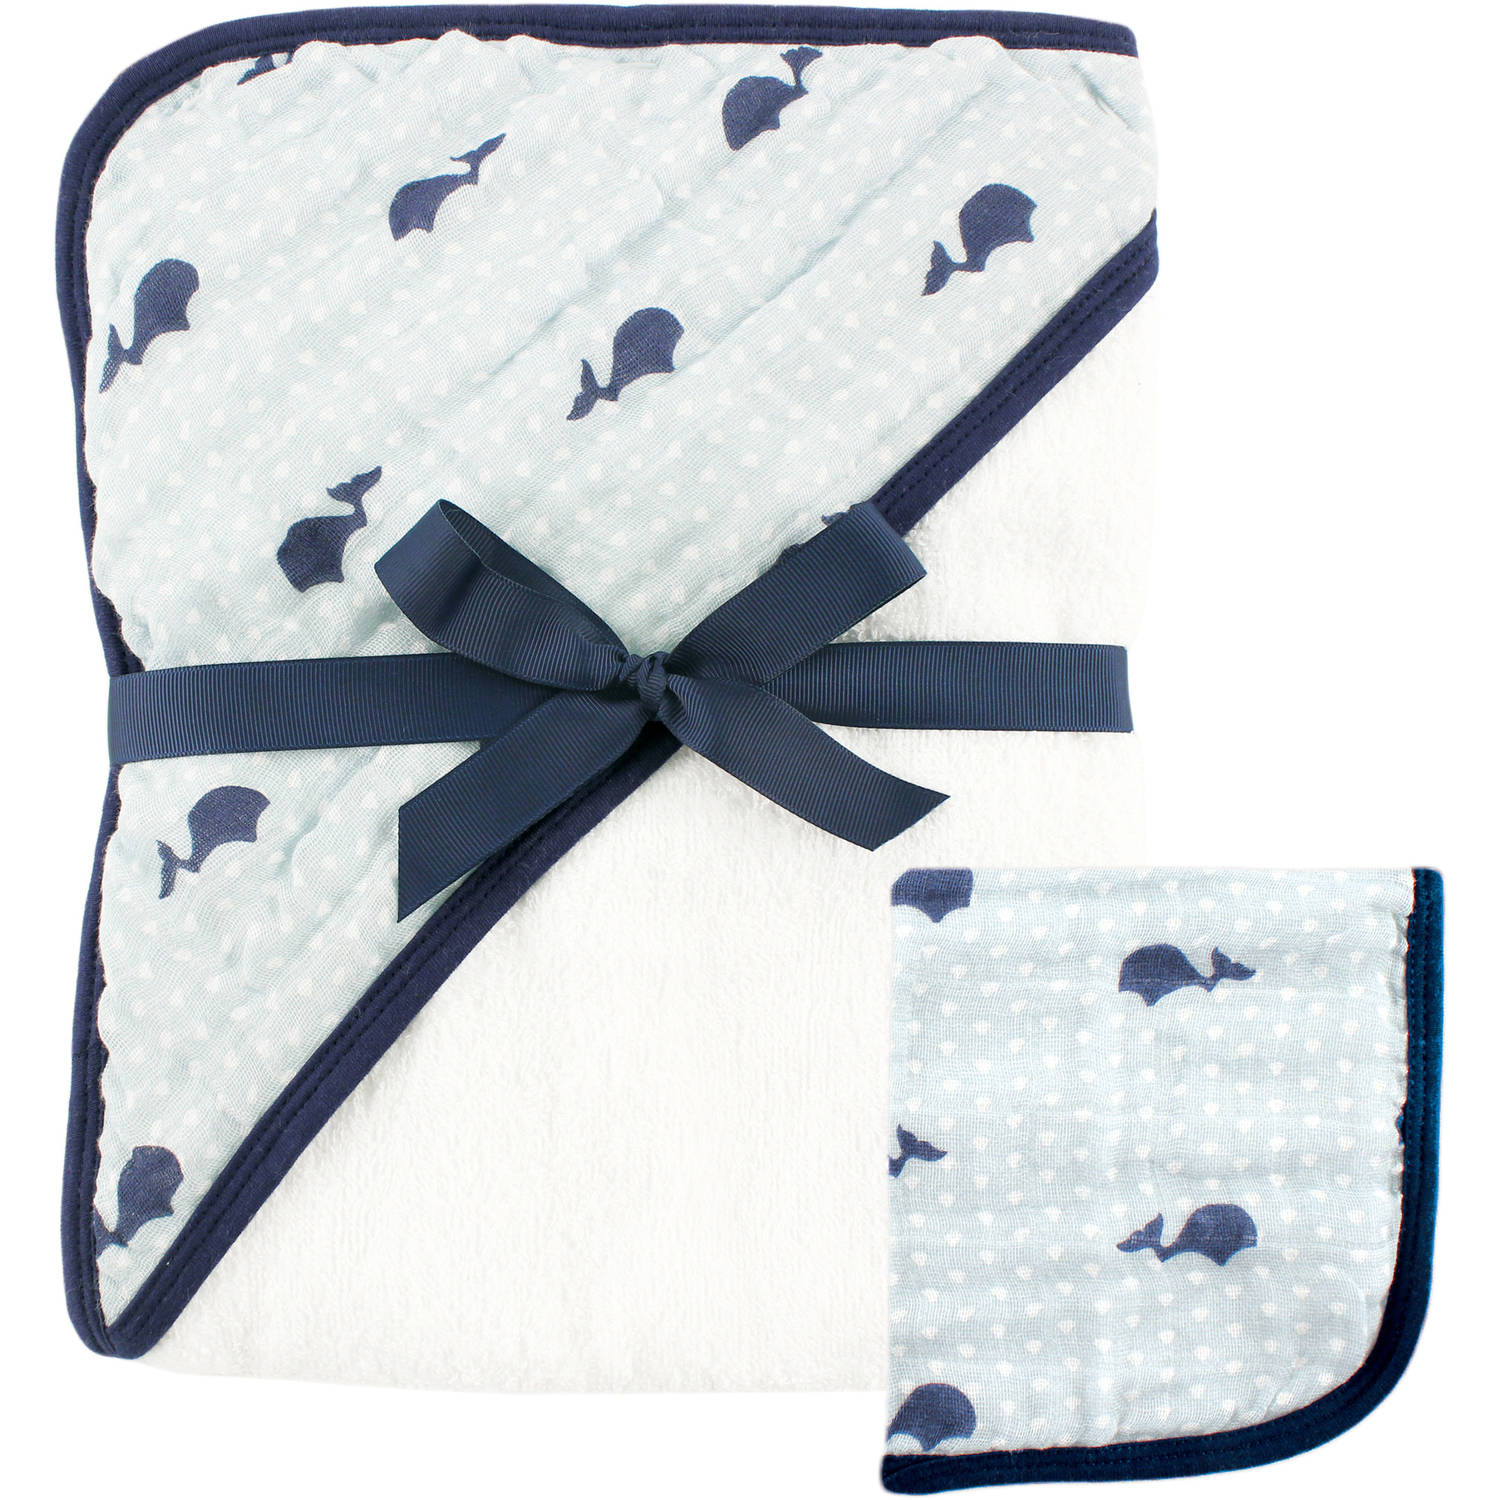 Hudson Baby Boys' and Girls' Muslin Hooded Towel and Washcloth, Choose Your Color